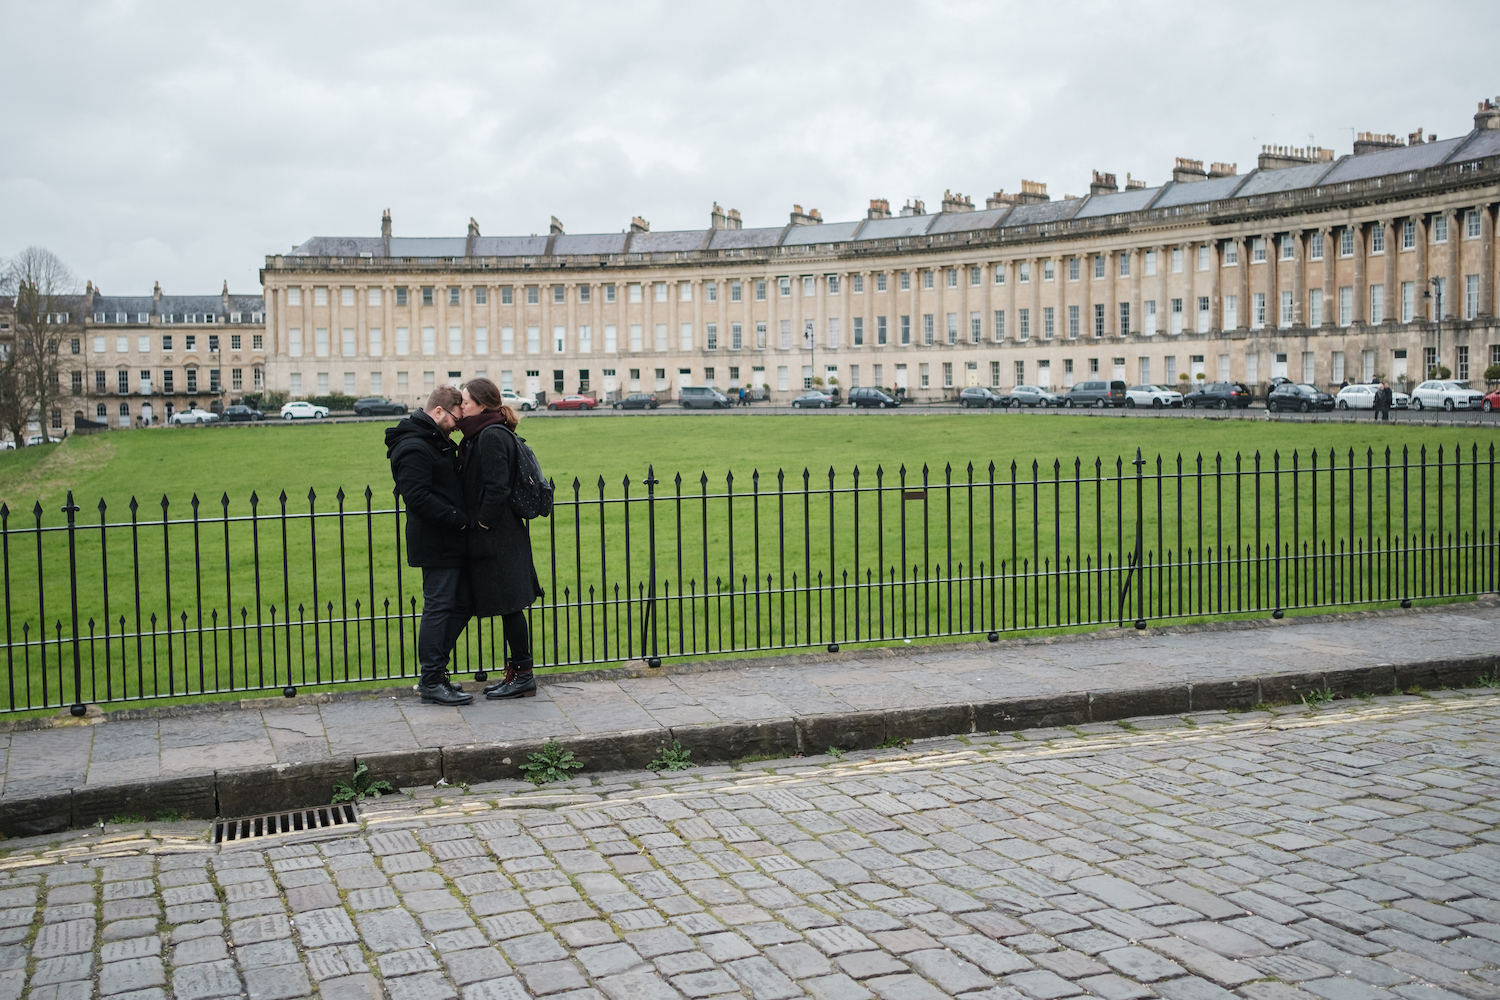 Bath Royal Crescent, England Travel and Street Photography - by Ben Holbrook from DriftwoodJournals.com-2